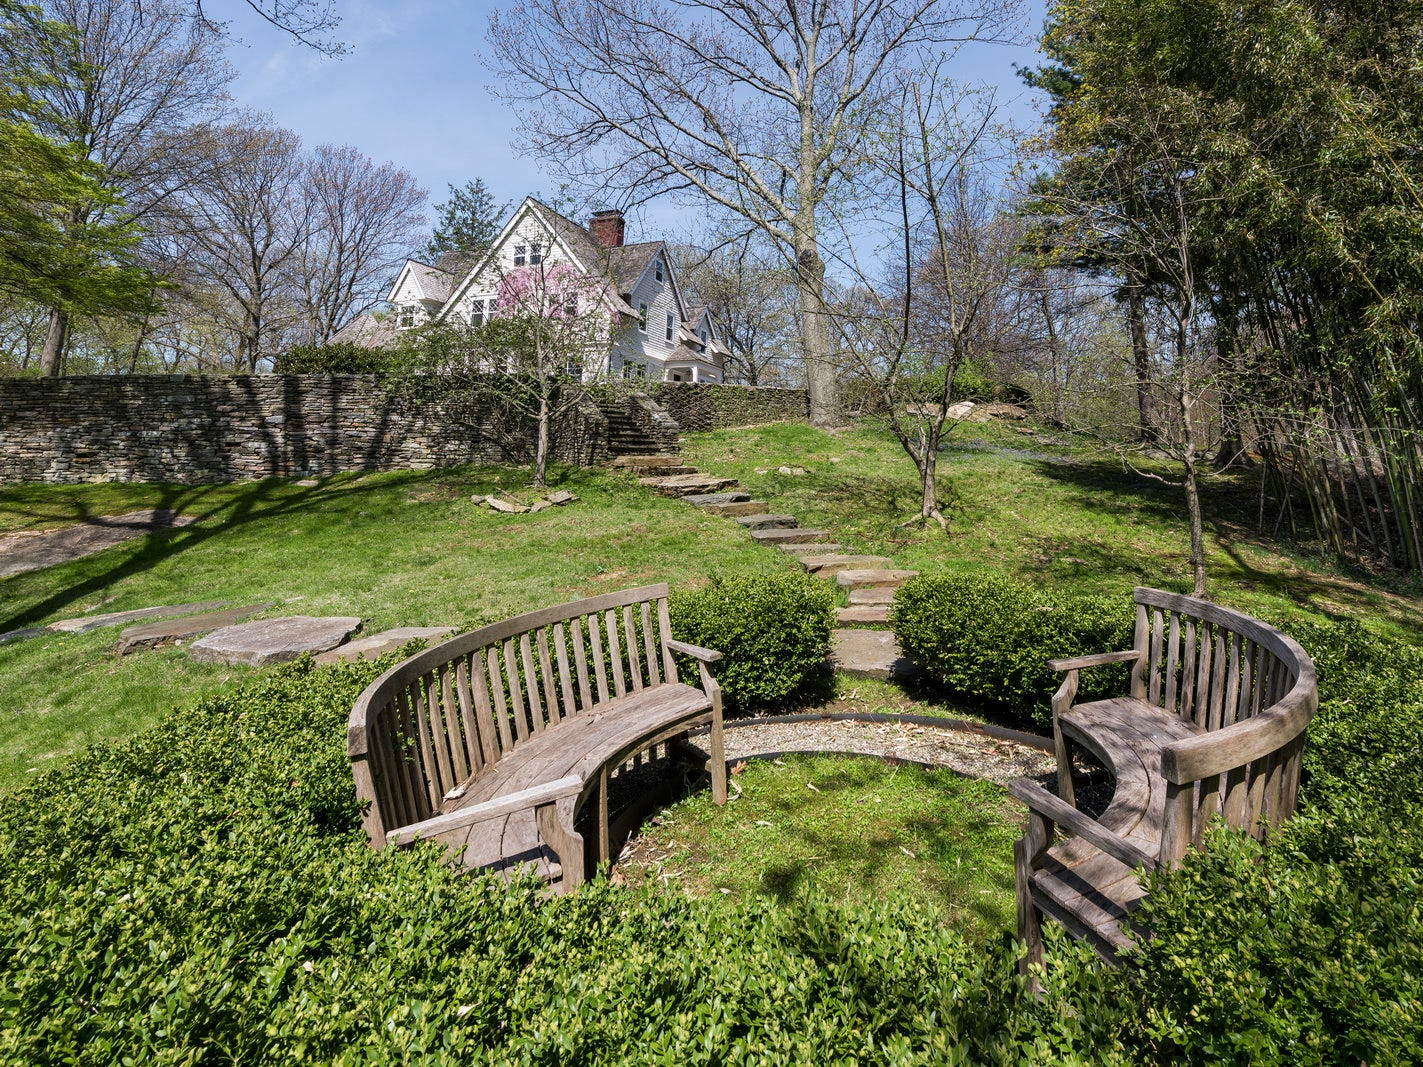 Famed aviation pioneer Ruth Rowland Nichols lived in this Rye home, now on the market. Built in 1880, the residence has had a modern renovation.